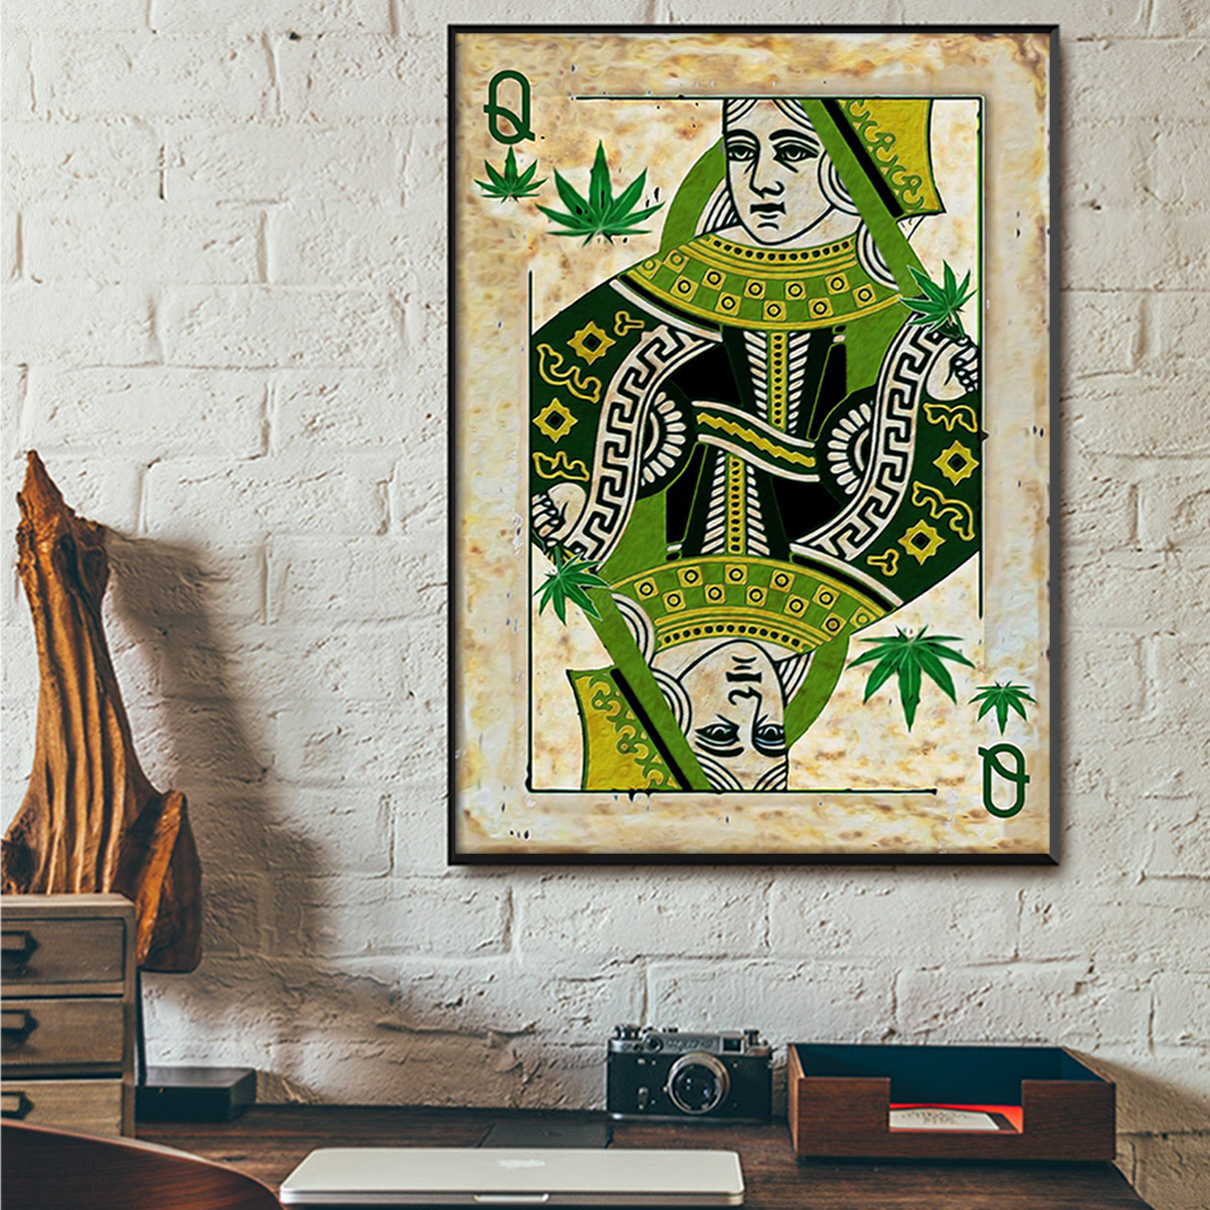 Queen card weed cannabis poster A2